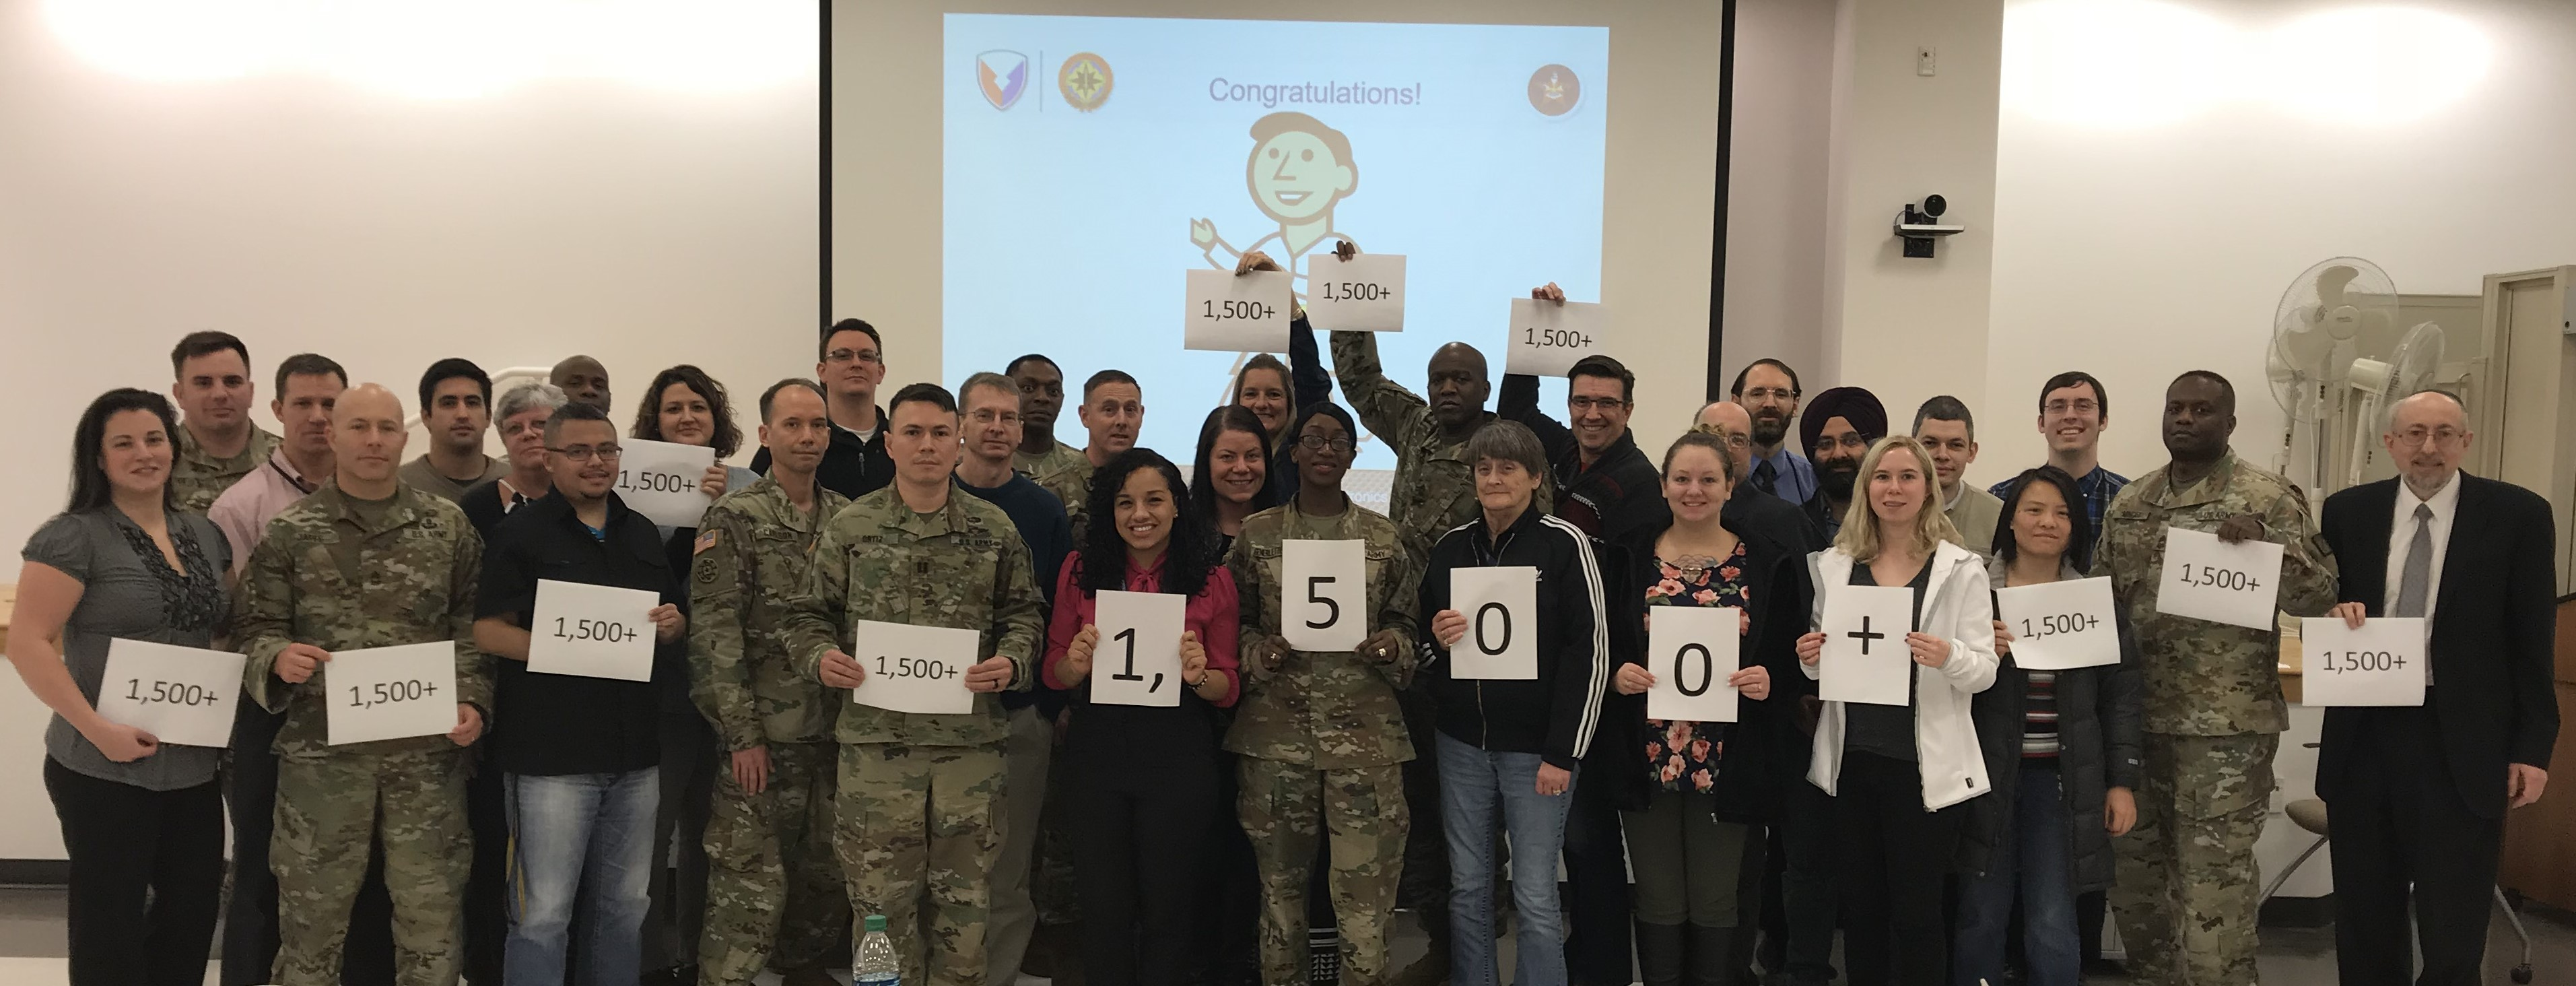 Yellow Belt Course Reaches The 1500th Student Mark Apg News